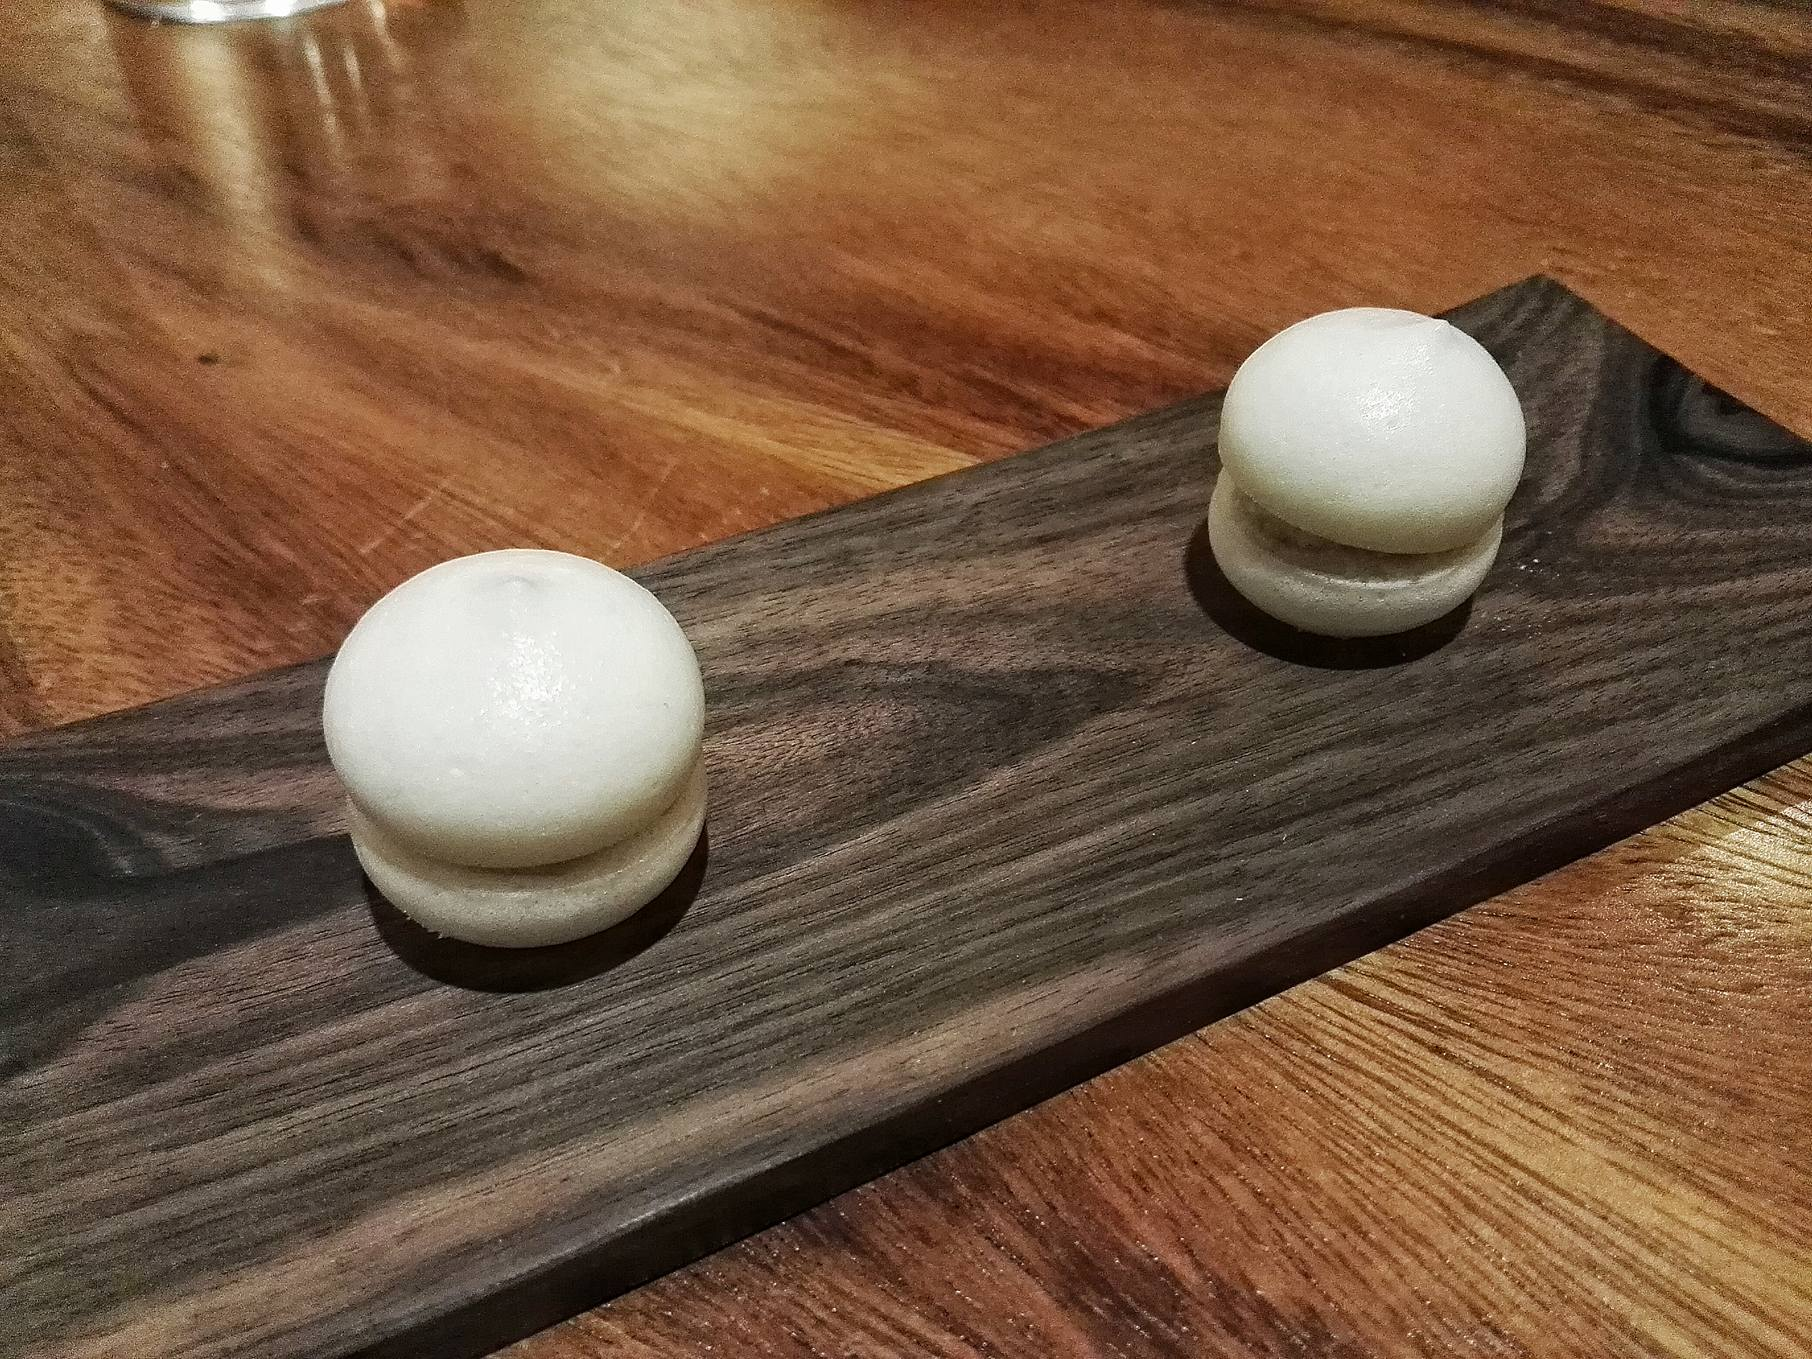 Tomato Meringue at Toyo Eatery, Makati, Philippines